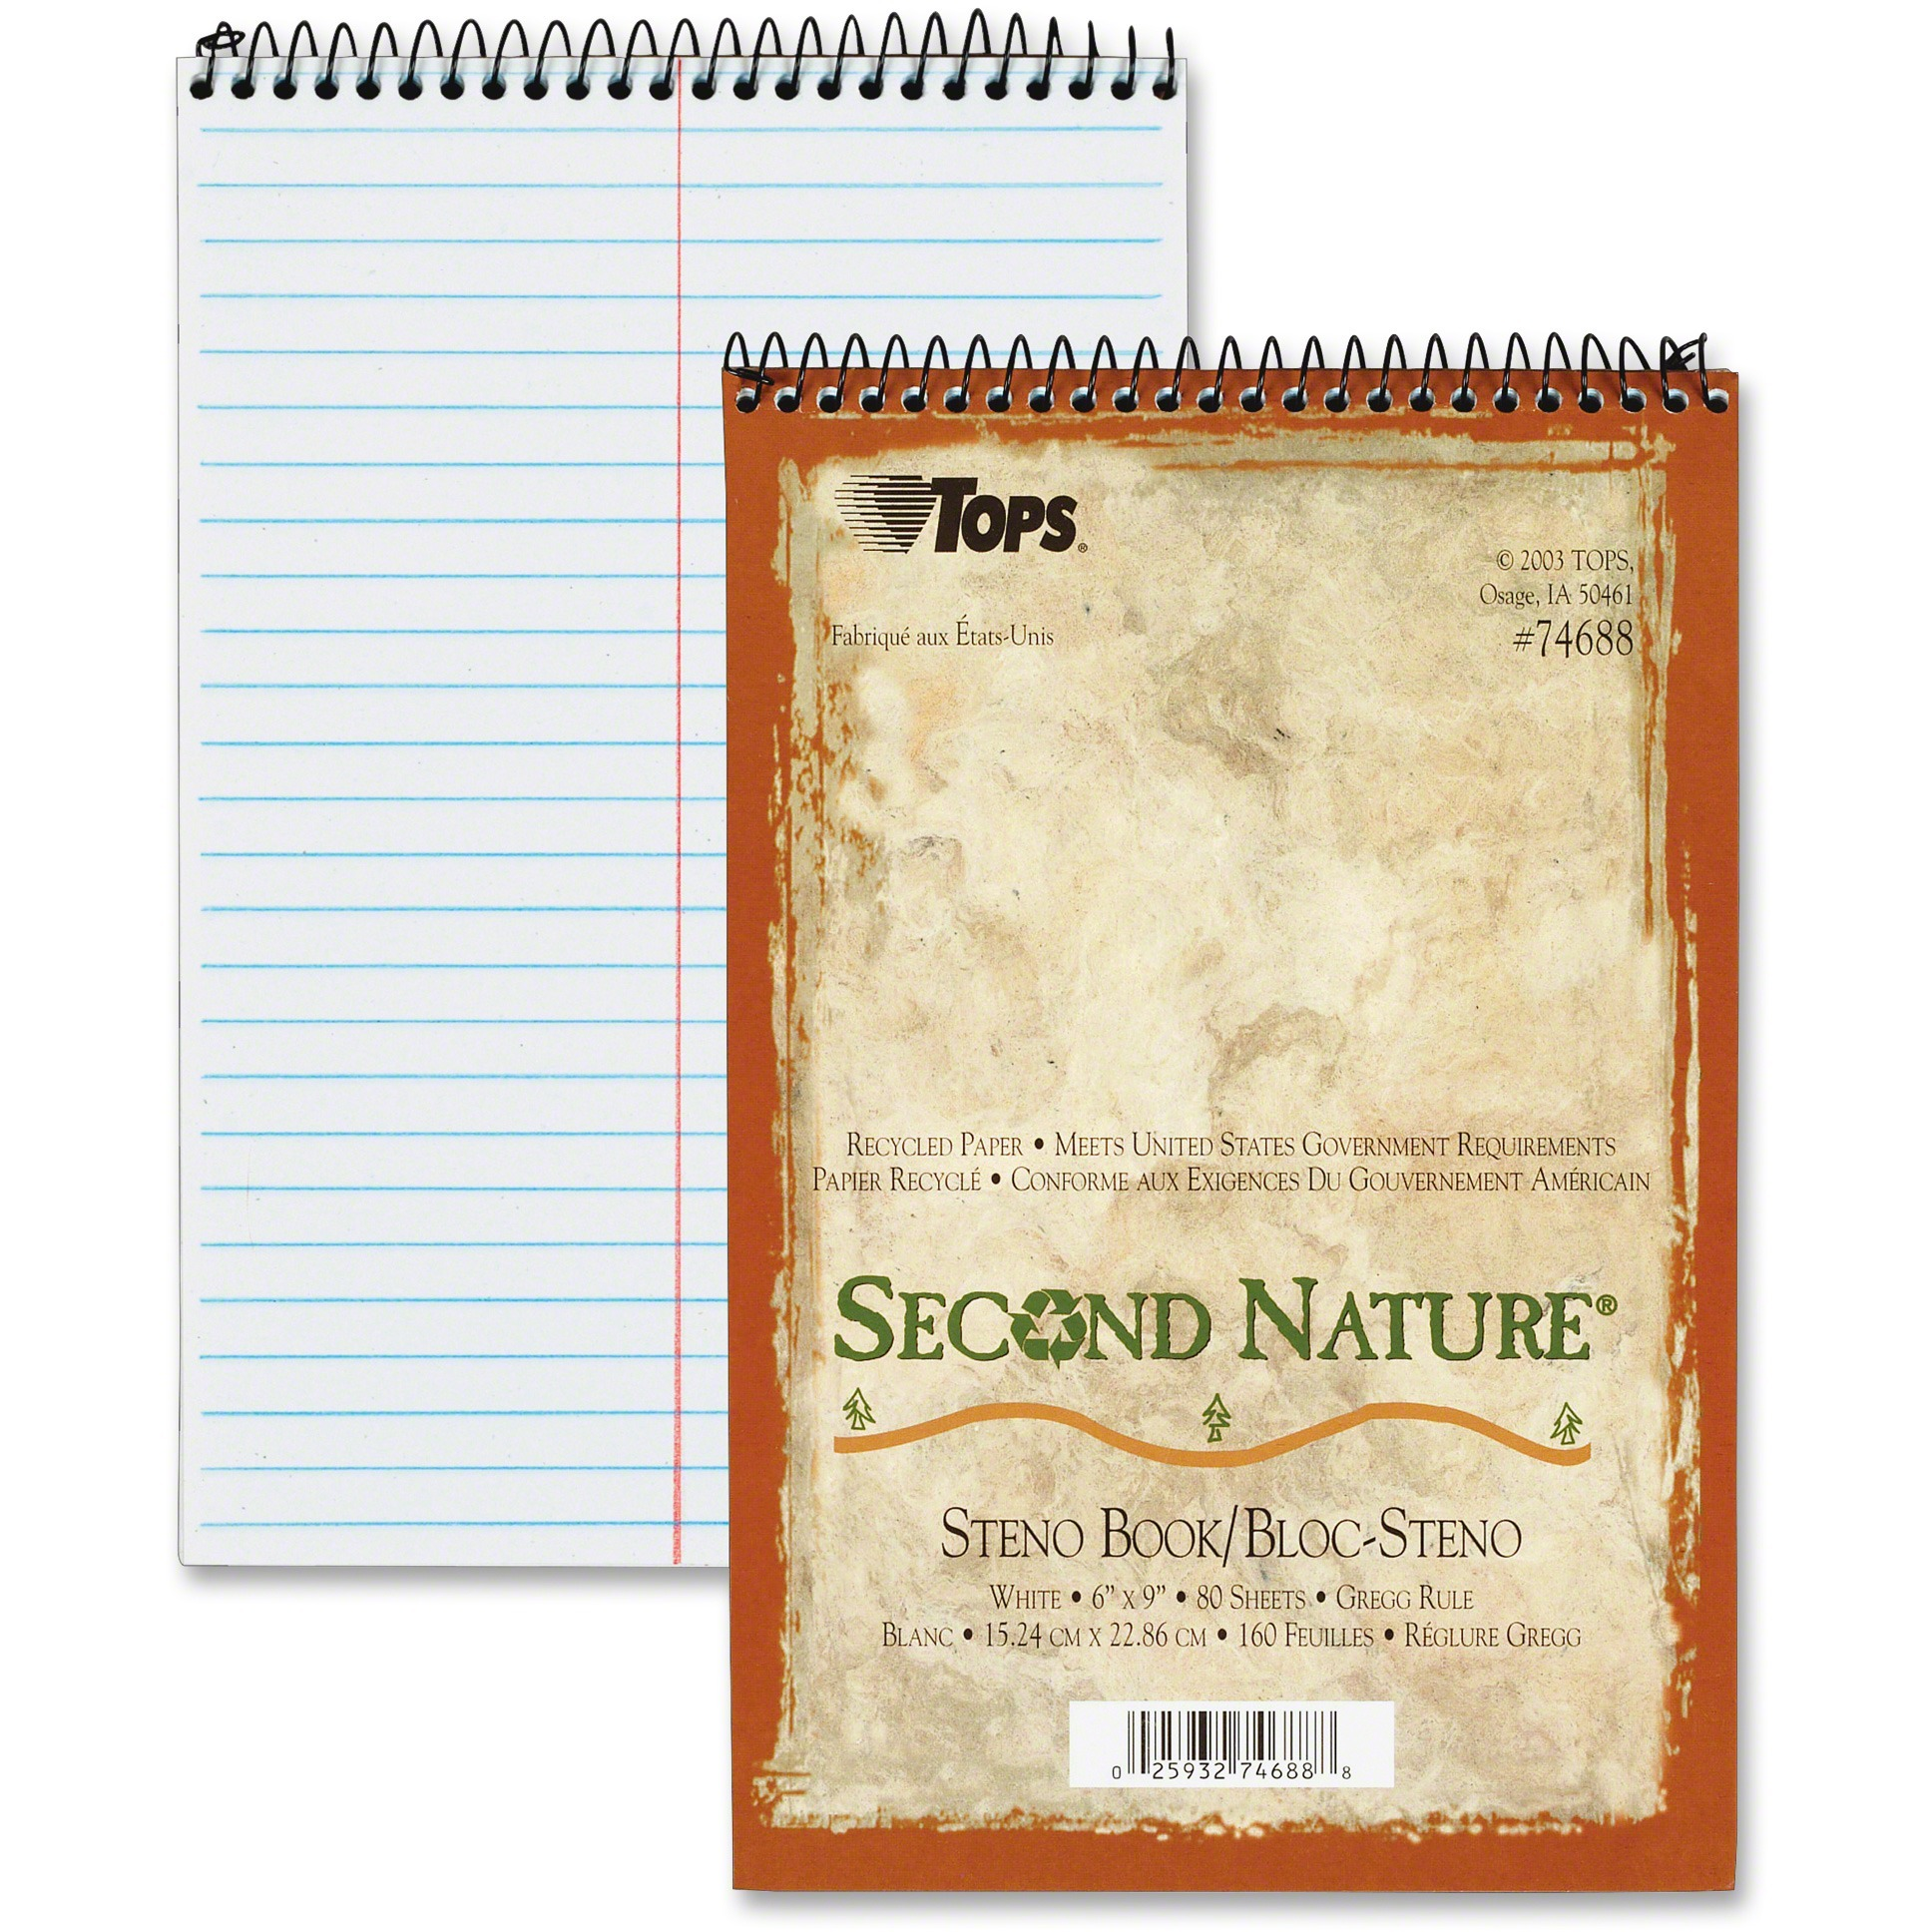 TOPS, TOP74688, Second Nature Spiral Reporter/Steno Notebook, 1 Each